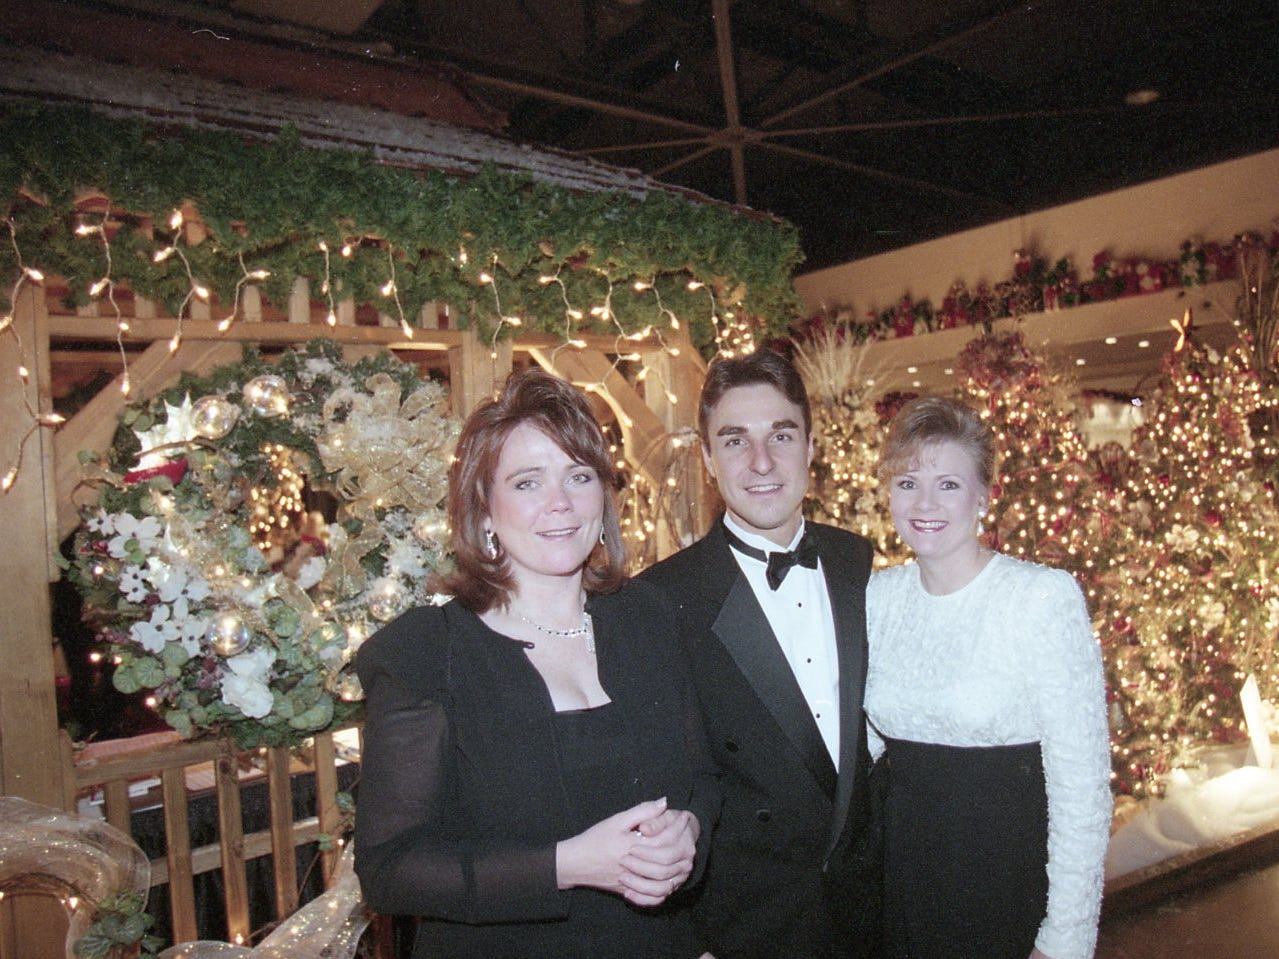 WIVK morning show personalities Alison West, Andy Ritchie and his wife Angie Ritchie, Fantasy of Trees gala, 1997.